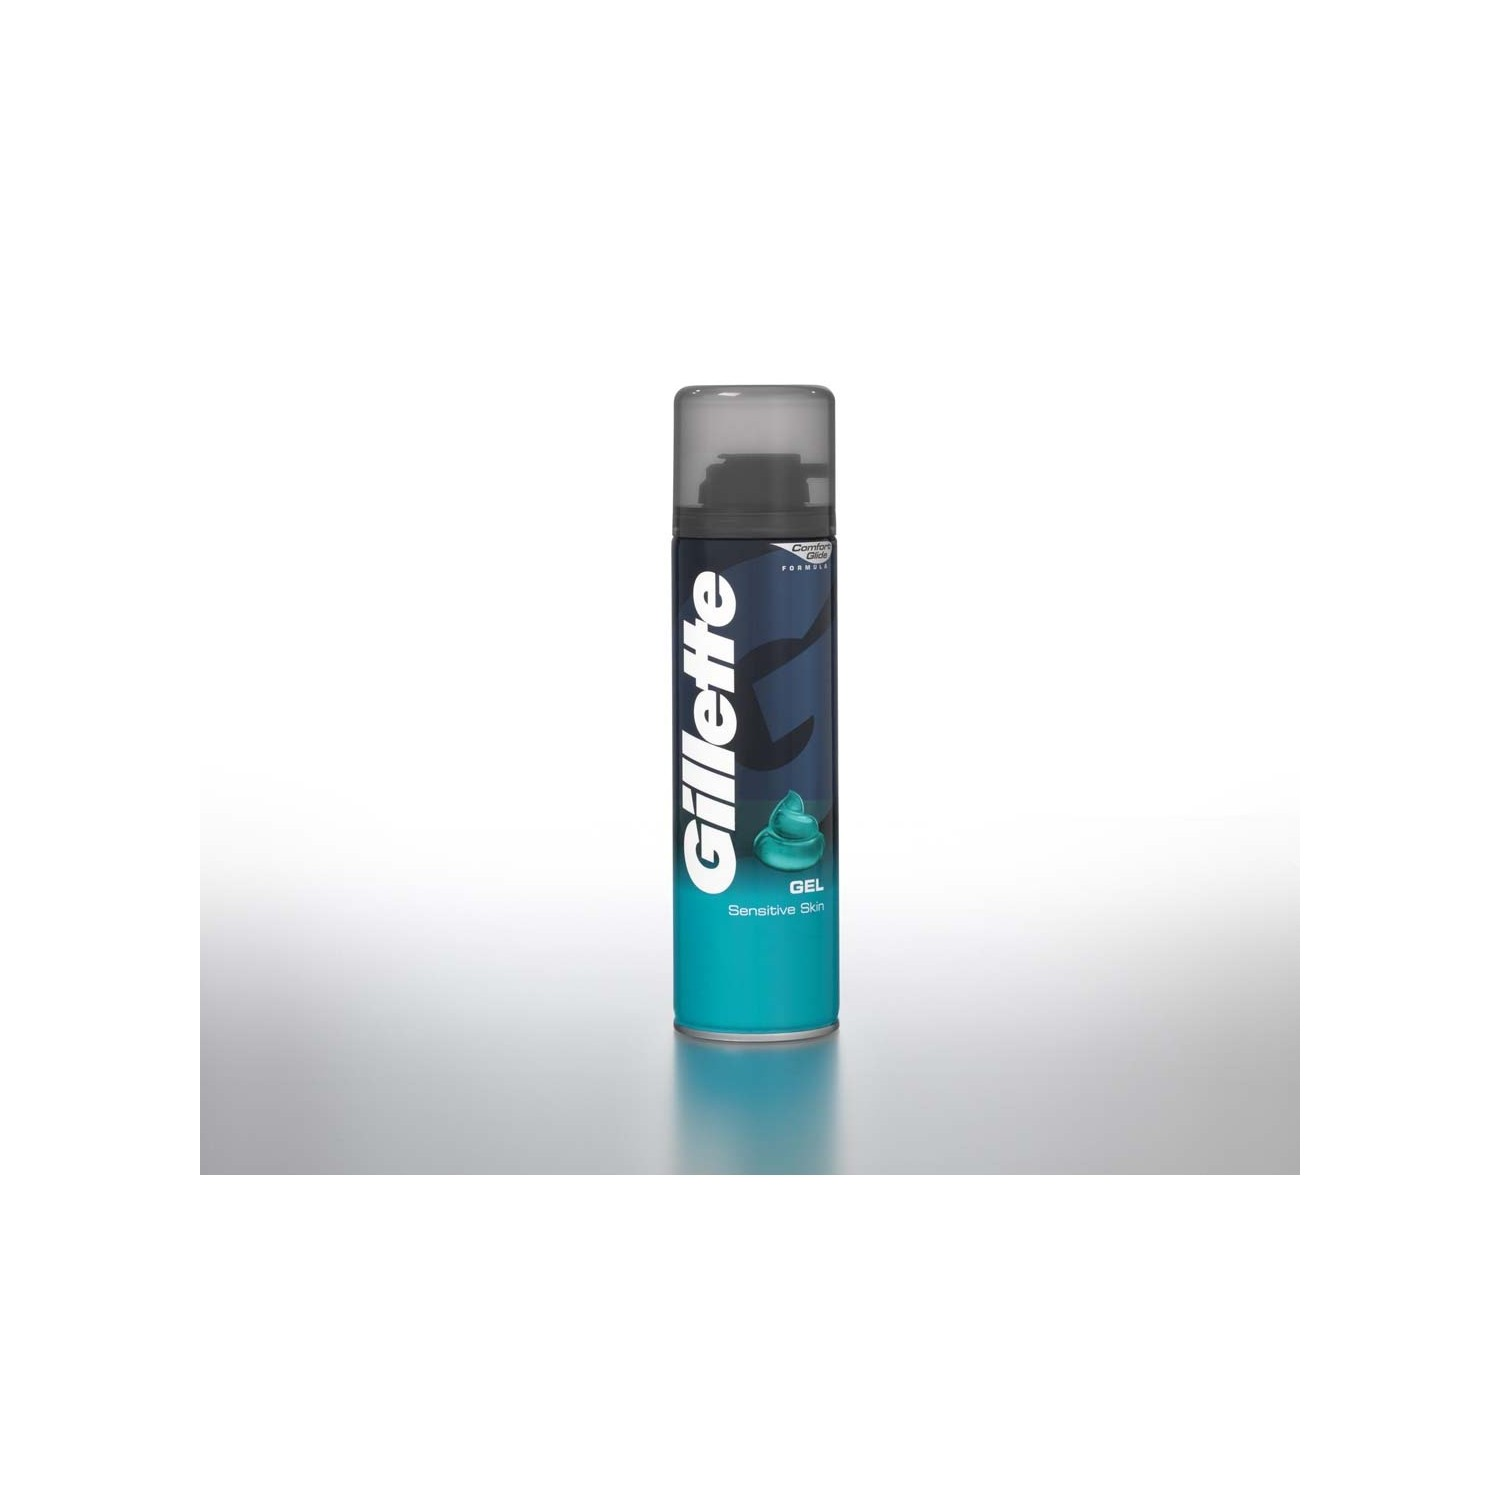 Gillette gel series piel sensible de 75ml.